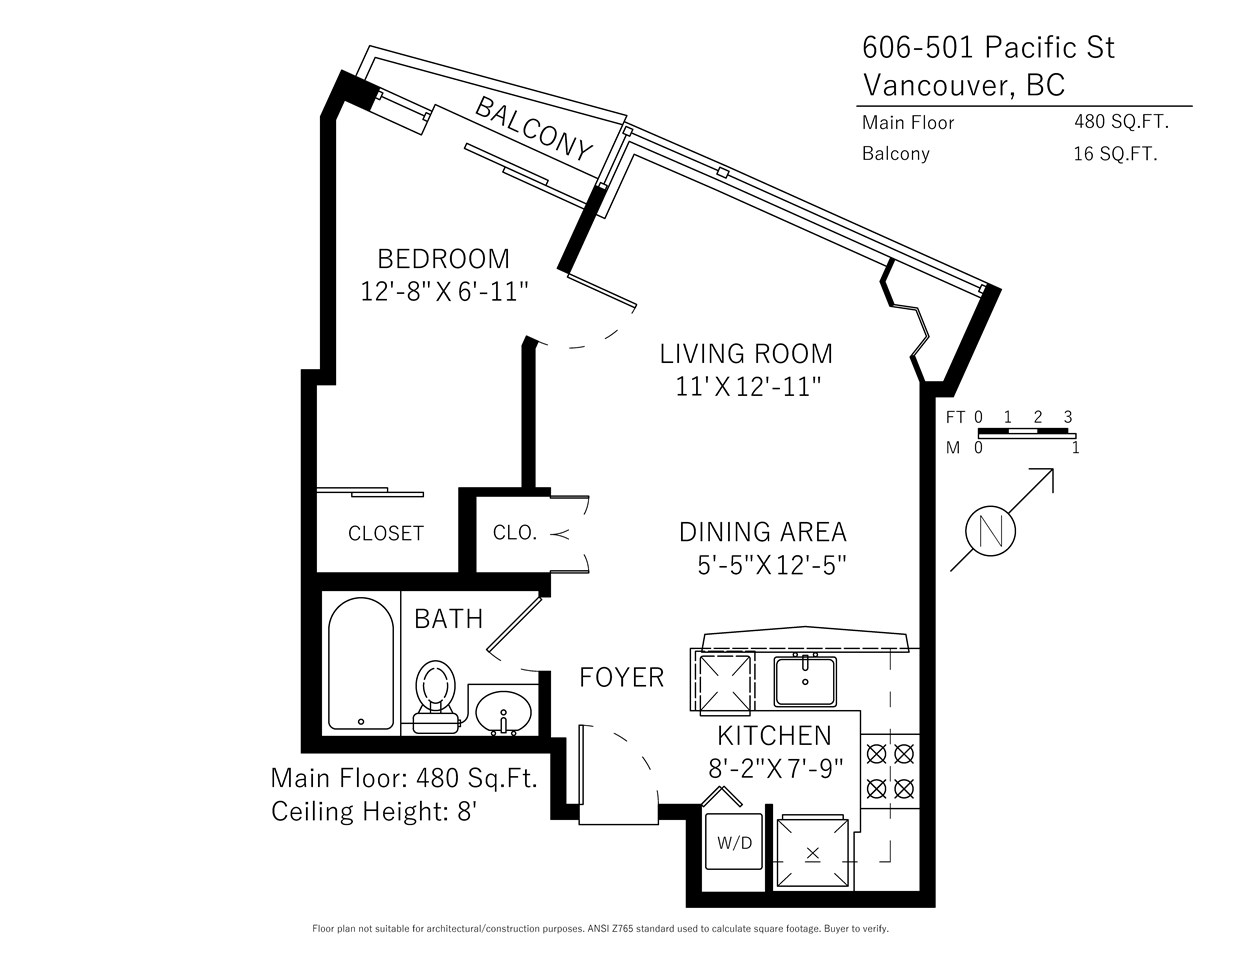 1242x960 Hammer Amp Watkinson Search My Listings Vancouver Homes For Sale